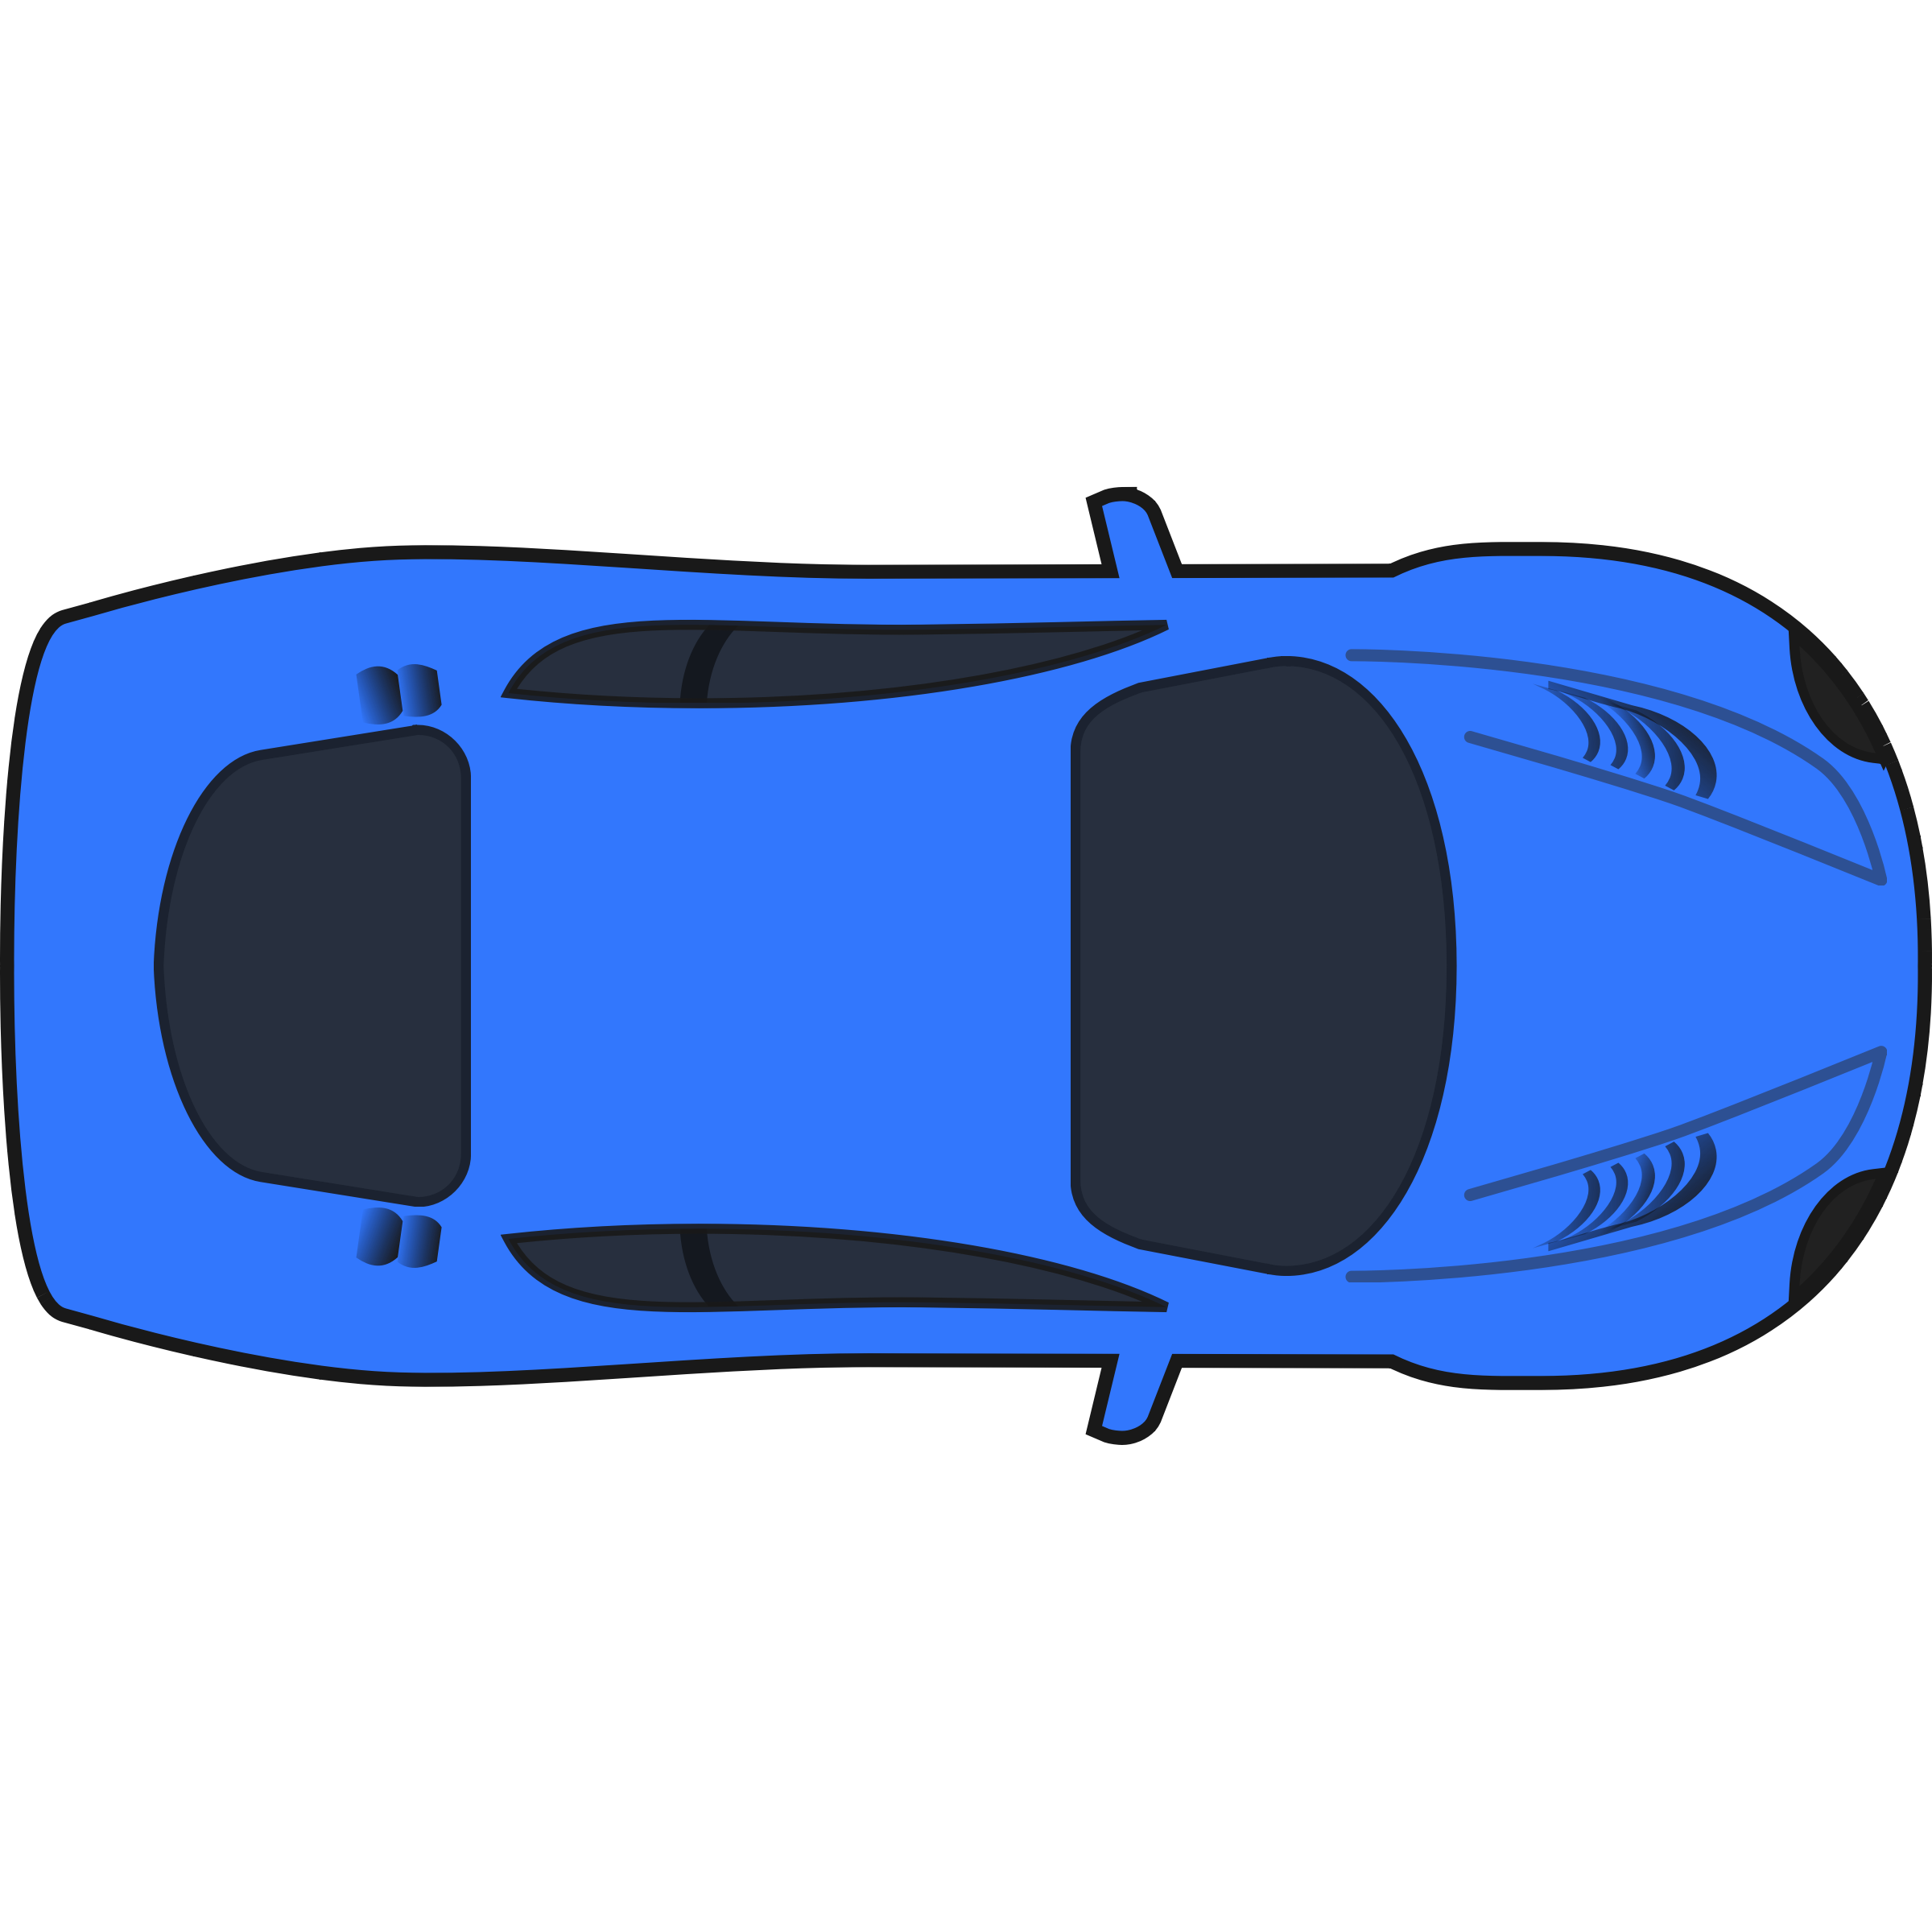 Indy race car clipart png royalty free Race Car Clipart | jokingart.com Car Clipart png royalty free